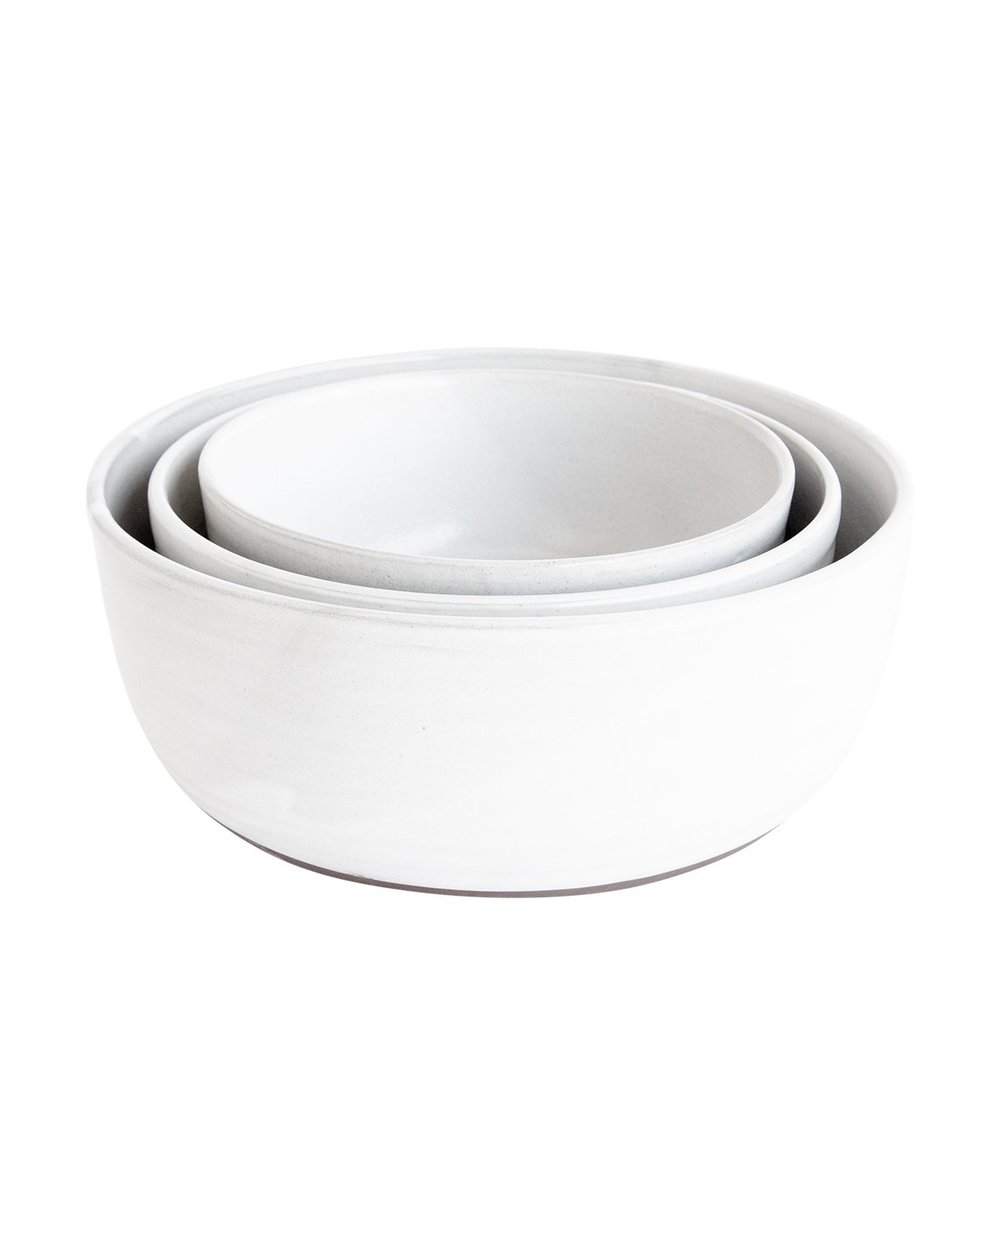 Black_White_Bowl_1.jpg